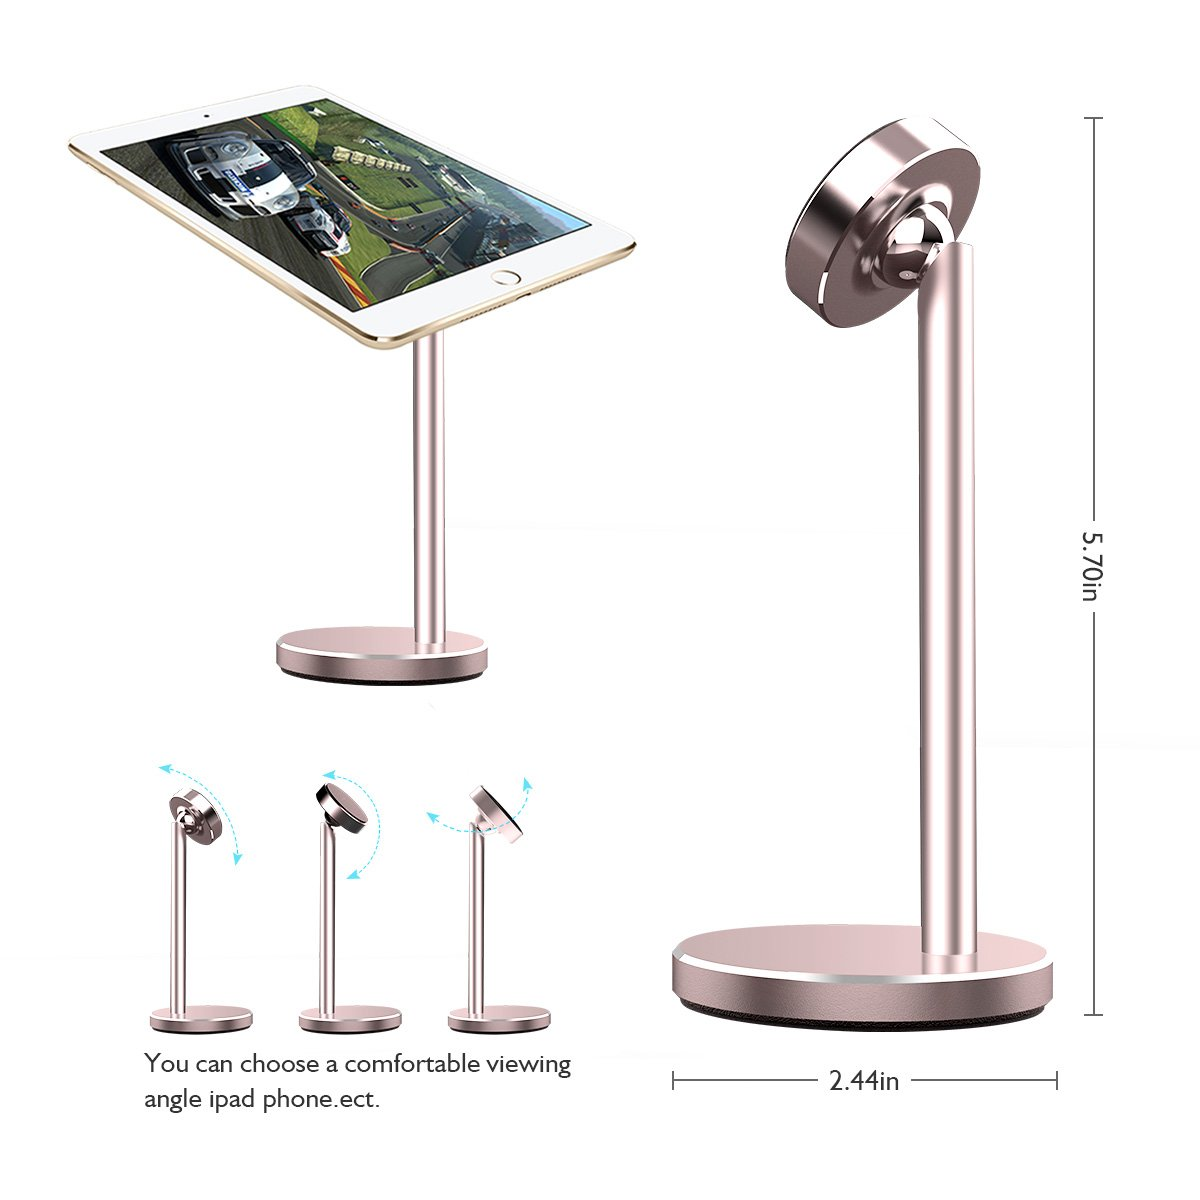 Licheers Magnetic Desktop Phone Stand, 360° Rotation Magnetic Tablet Mount Holder for Universal iPhone iPad, Samsung Galaxy Note, Face time Call and Watching Videos With Hands free (Silver)